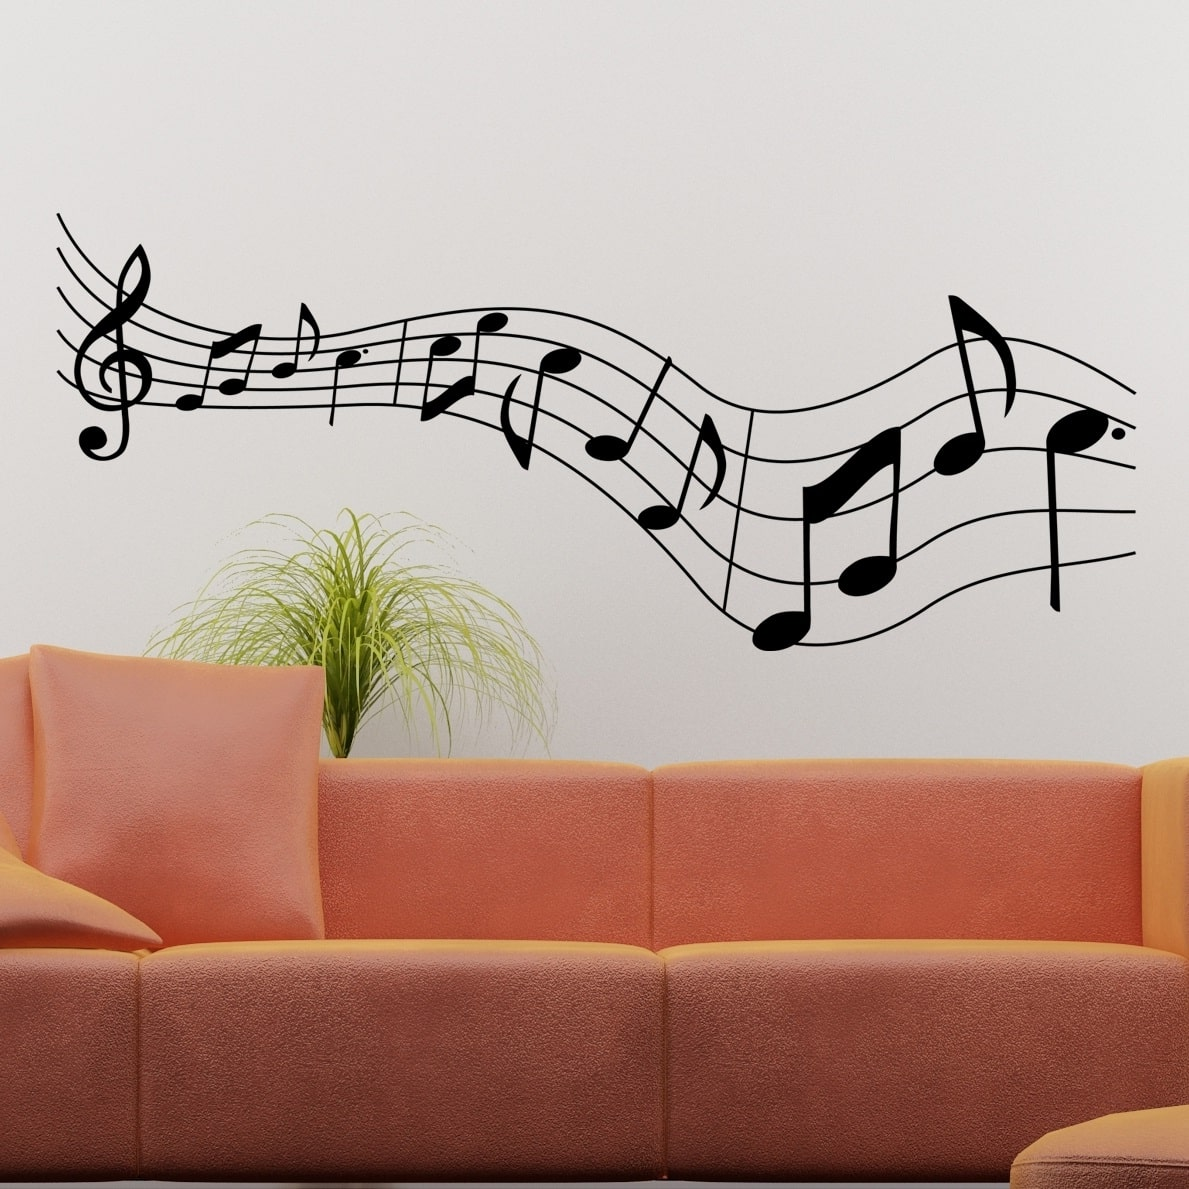 Wallsticker Noder